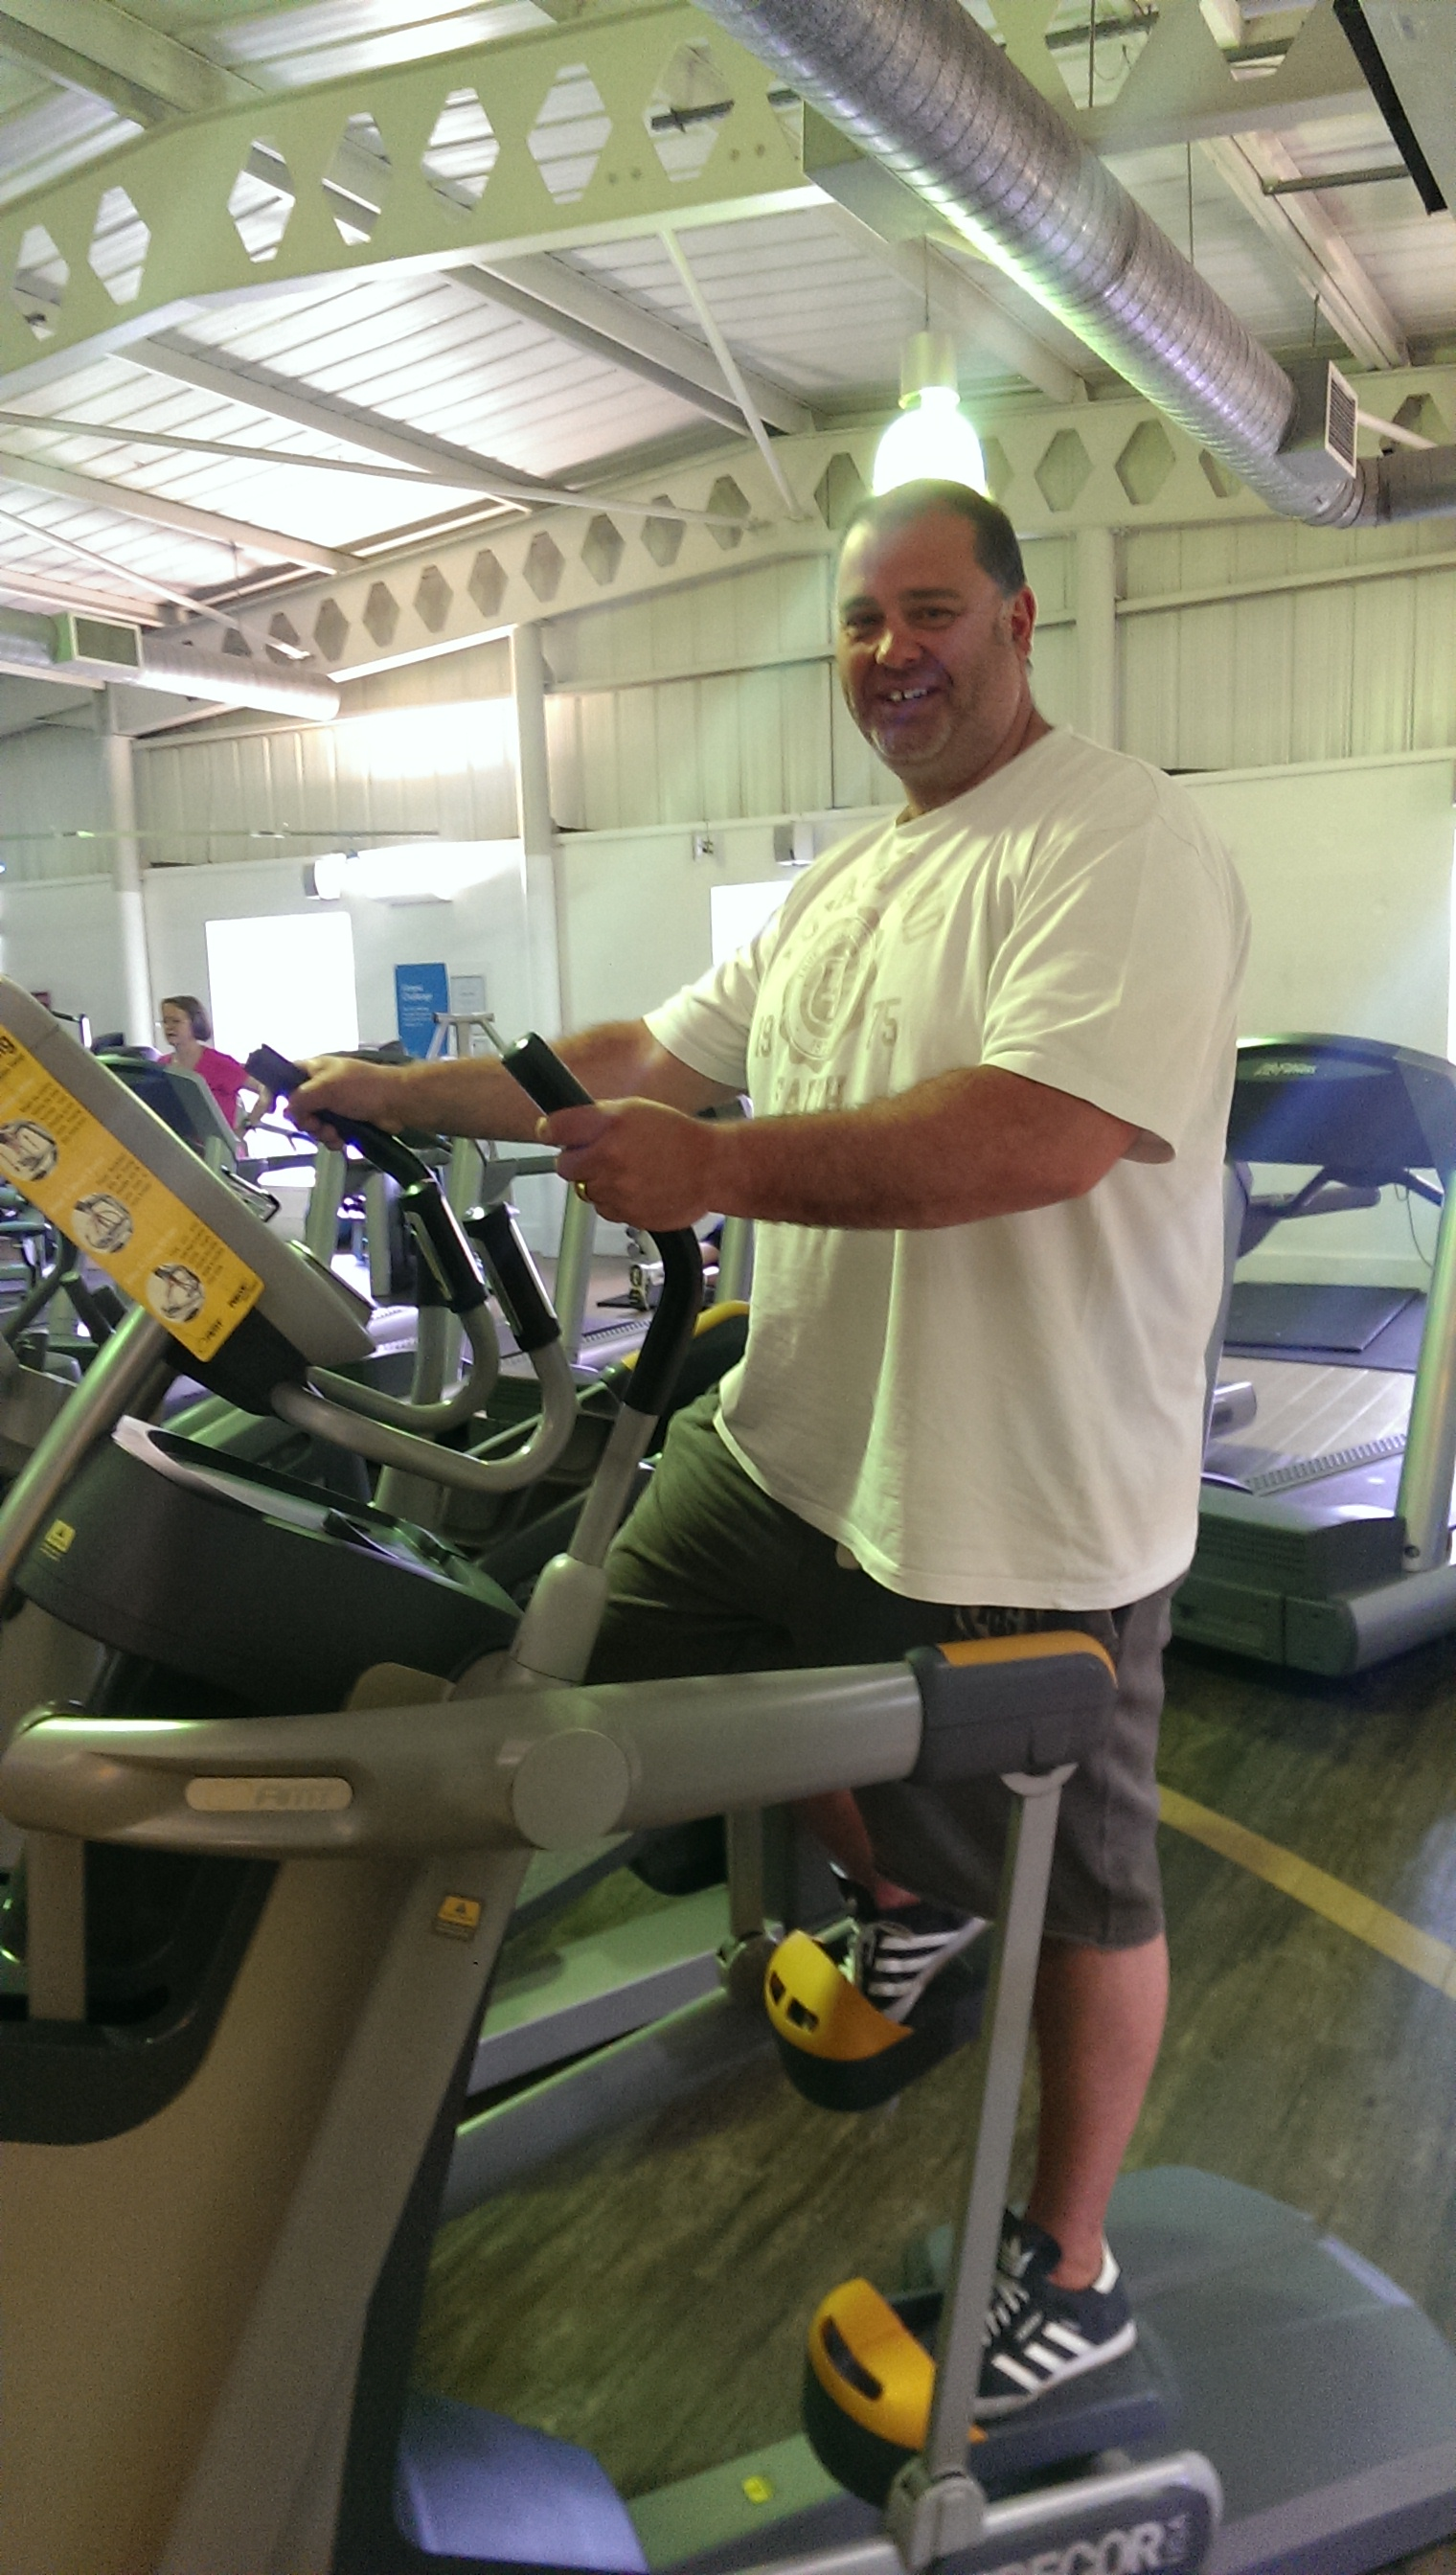 Nigel set him self a challenge to lose one stone in one month